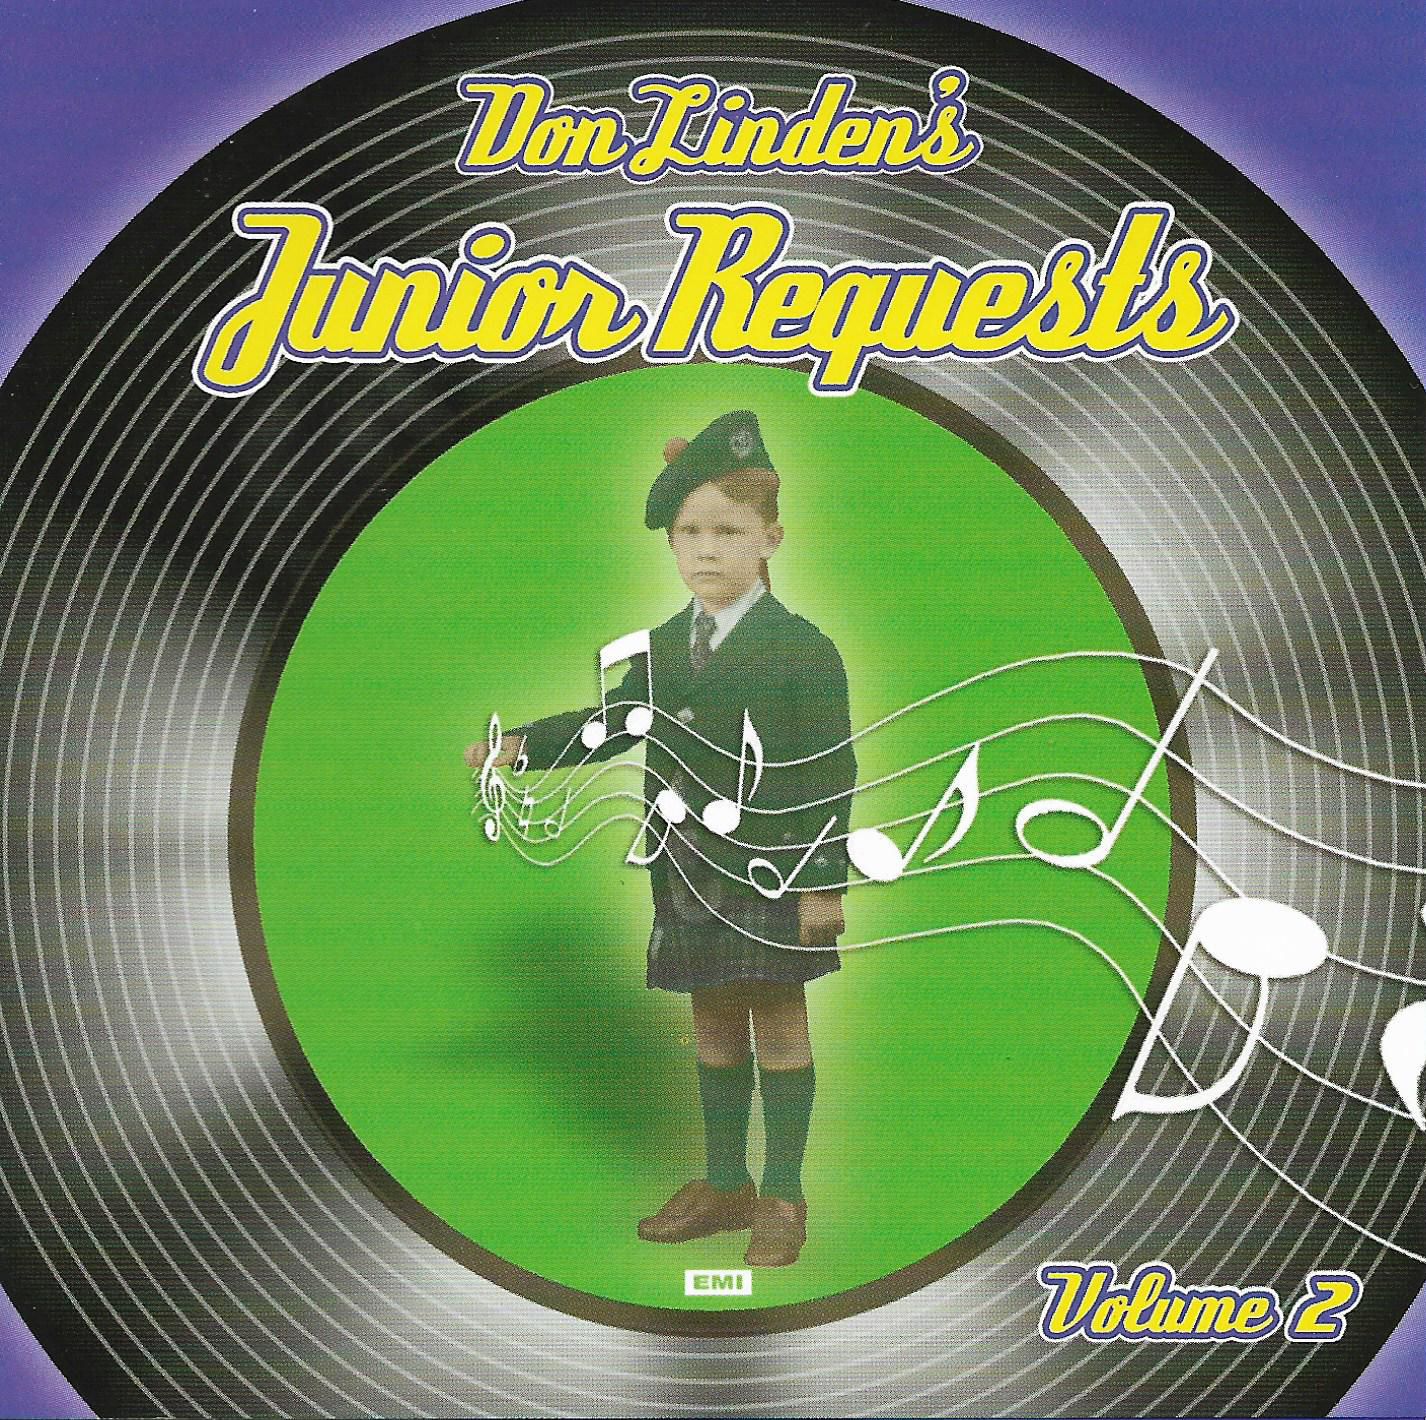 Junior Requests Volume 2 image